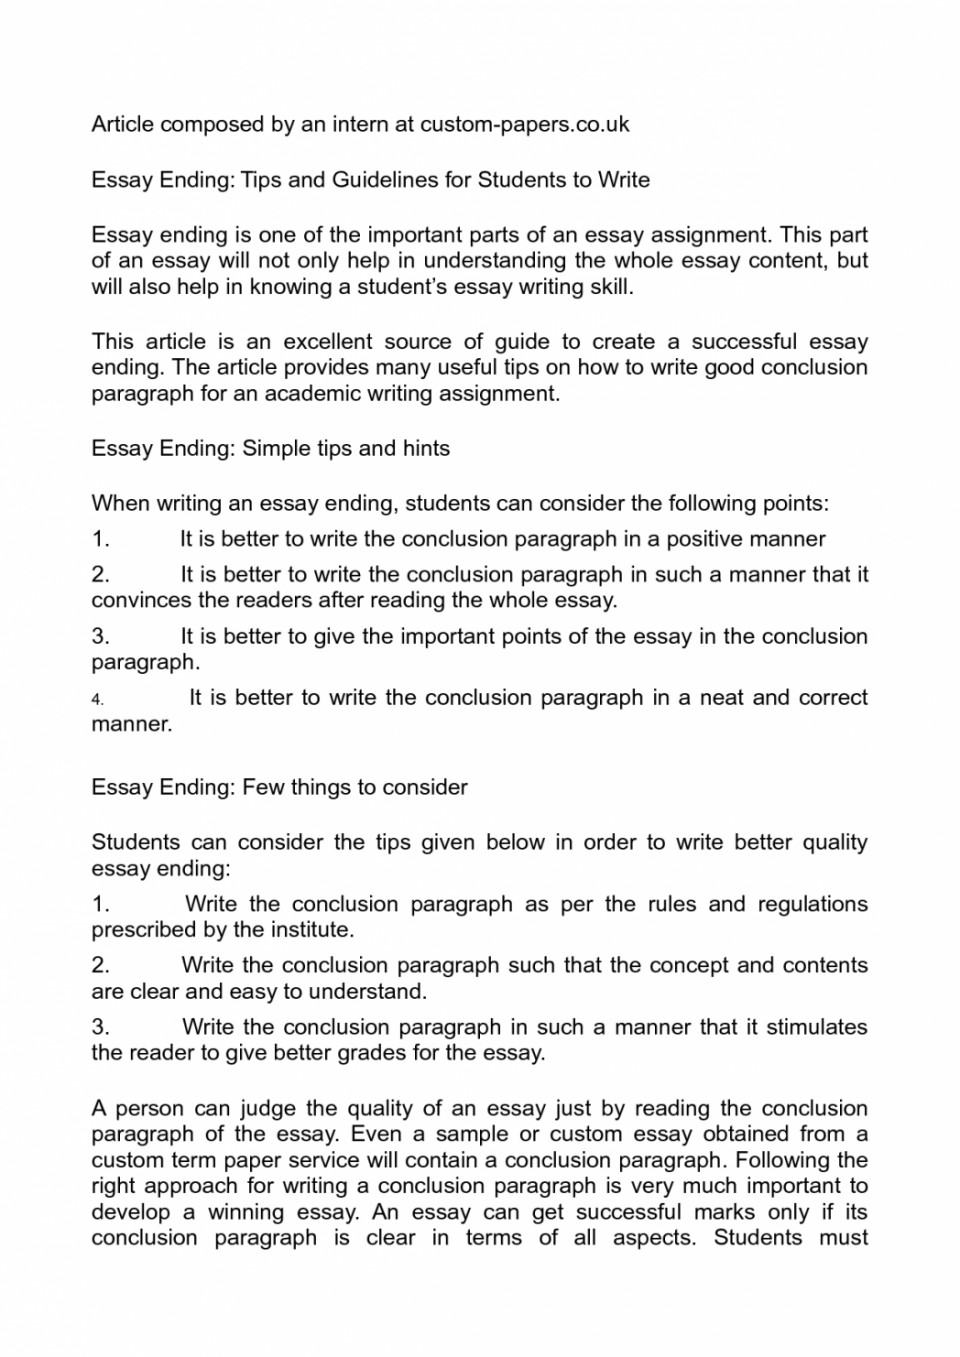 013 Good Ways To End An Essay Example Ending Is It Okay With Question Pzwnx My Wrong Outstanding What's The Best Way What A Argumentative College 960